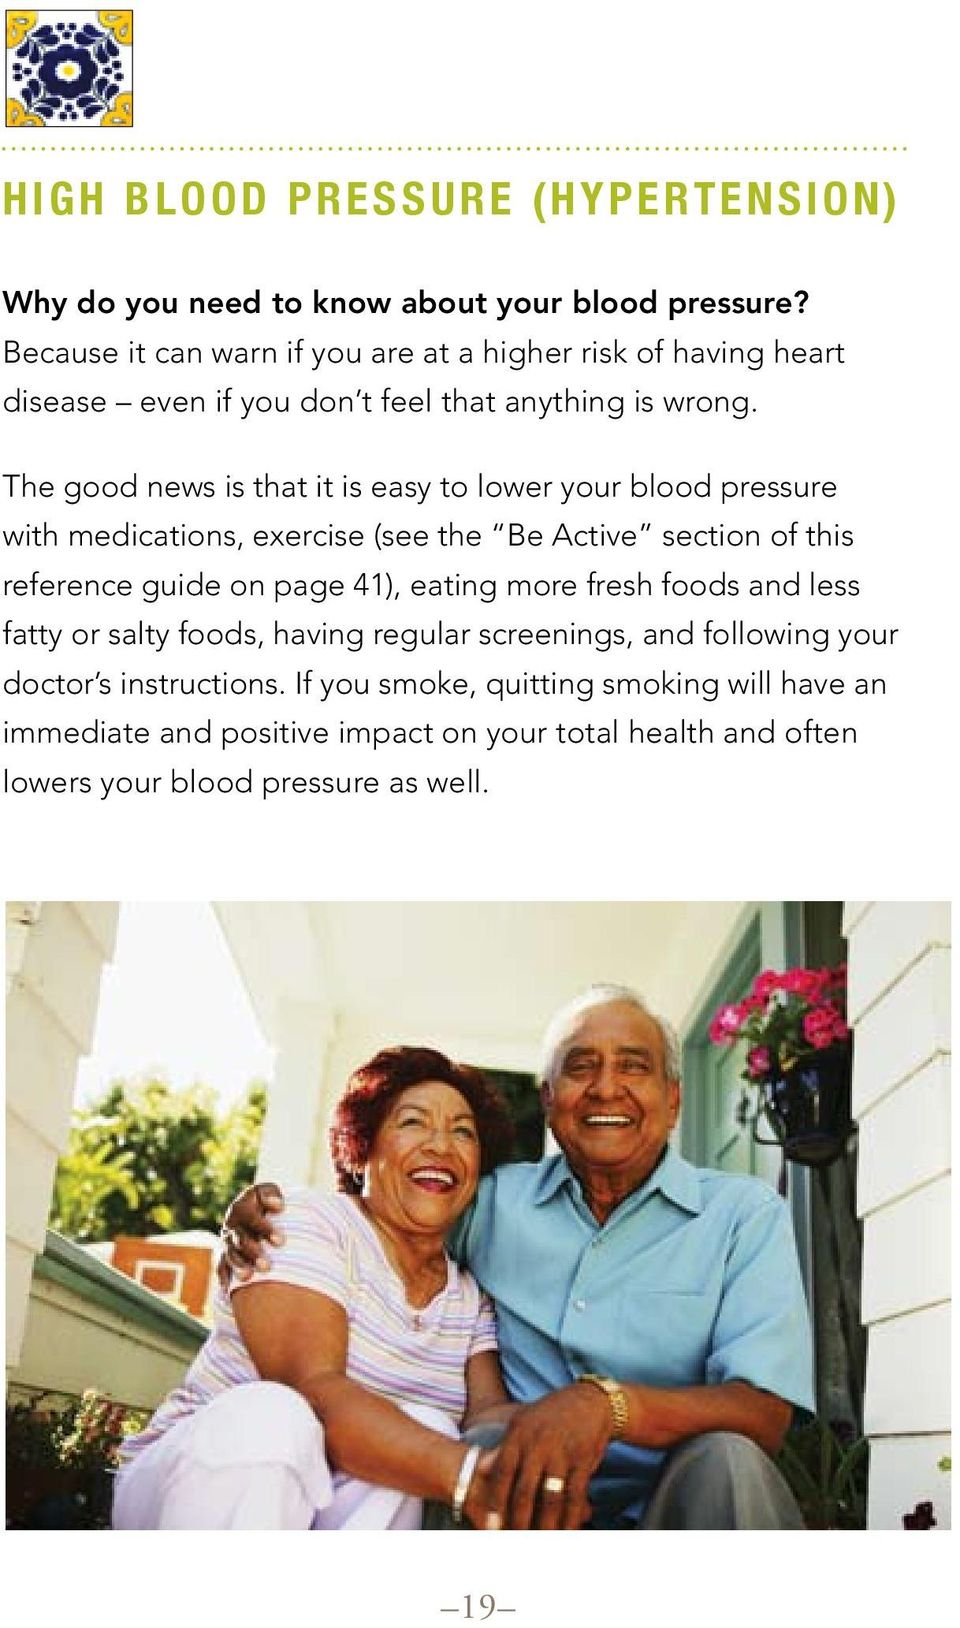 The good news is that it is easy to lower your blood pressure with medications, exercise (see the Be Active section of this reference guide on page 41), eating